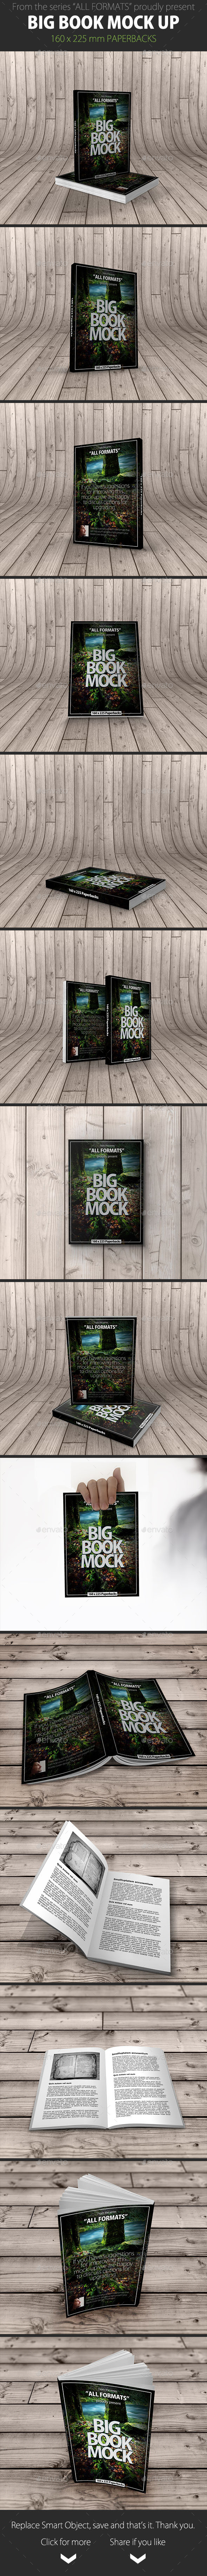 Book Mockup Dimension 160 x 225 mm Paperbacks